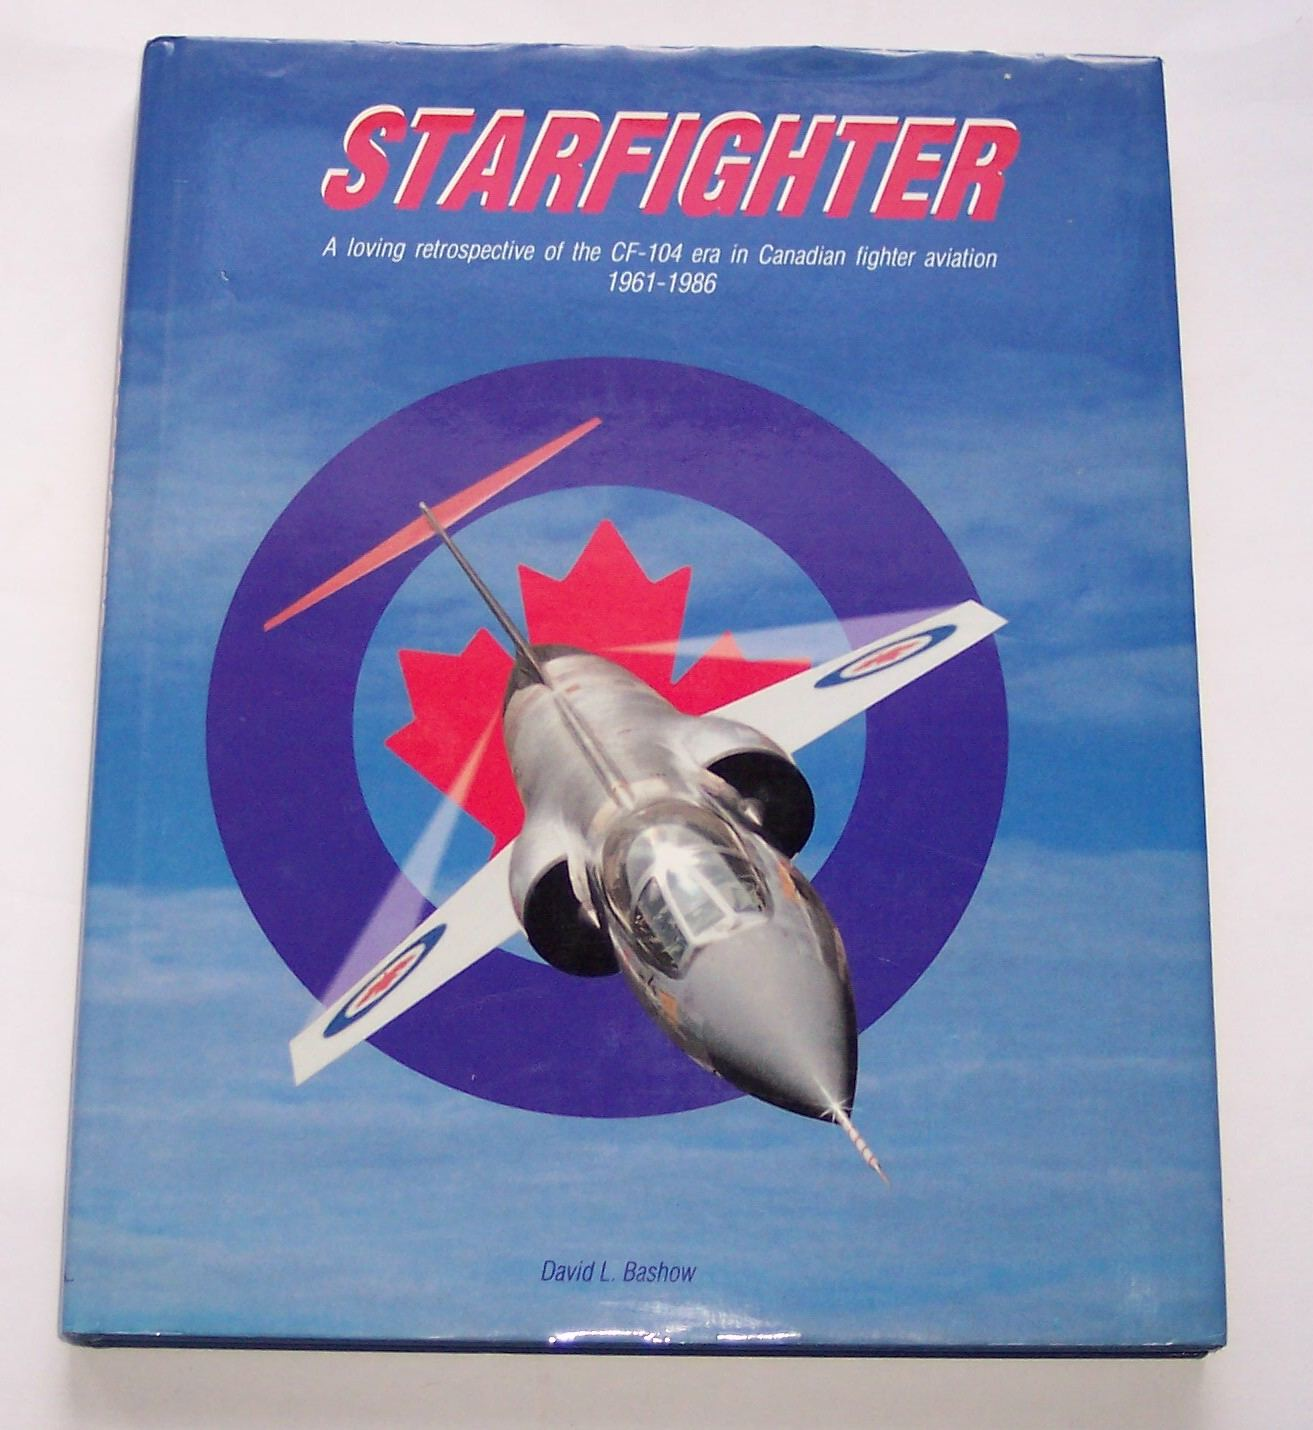 Image for Starfighter A Loving Restrospective of the CF-104 Era in Canadian Fighter Aviation 1961-1986